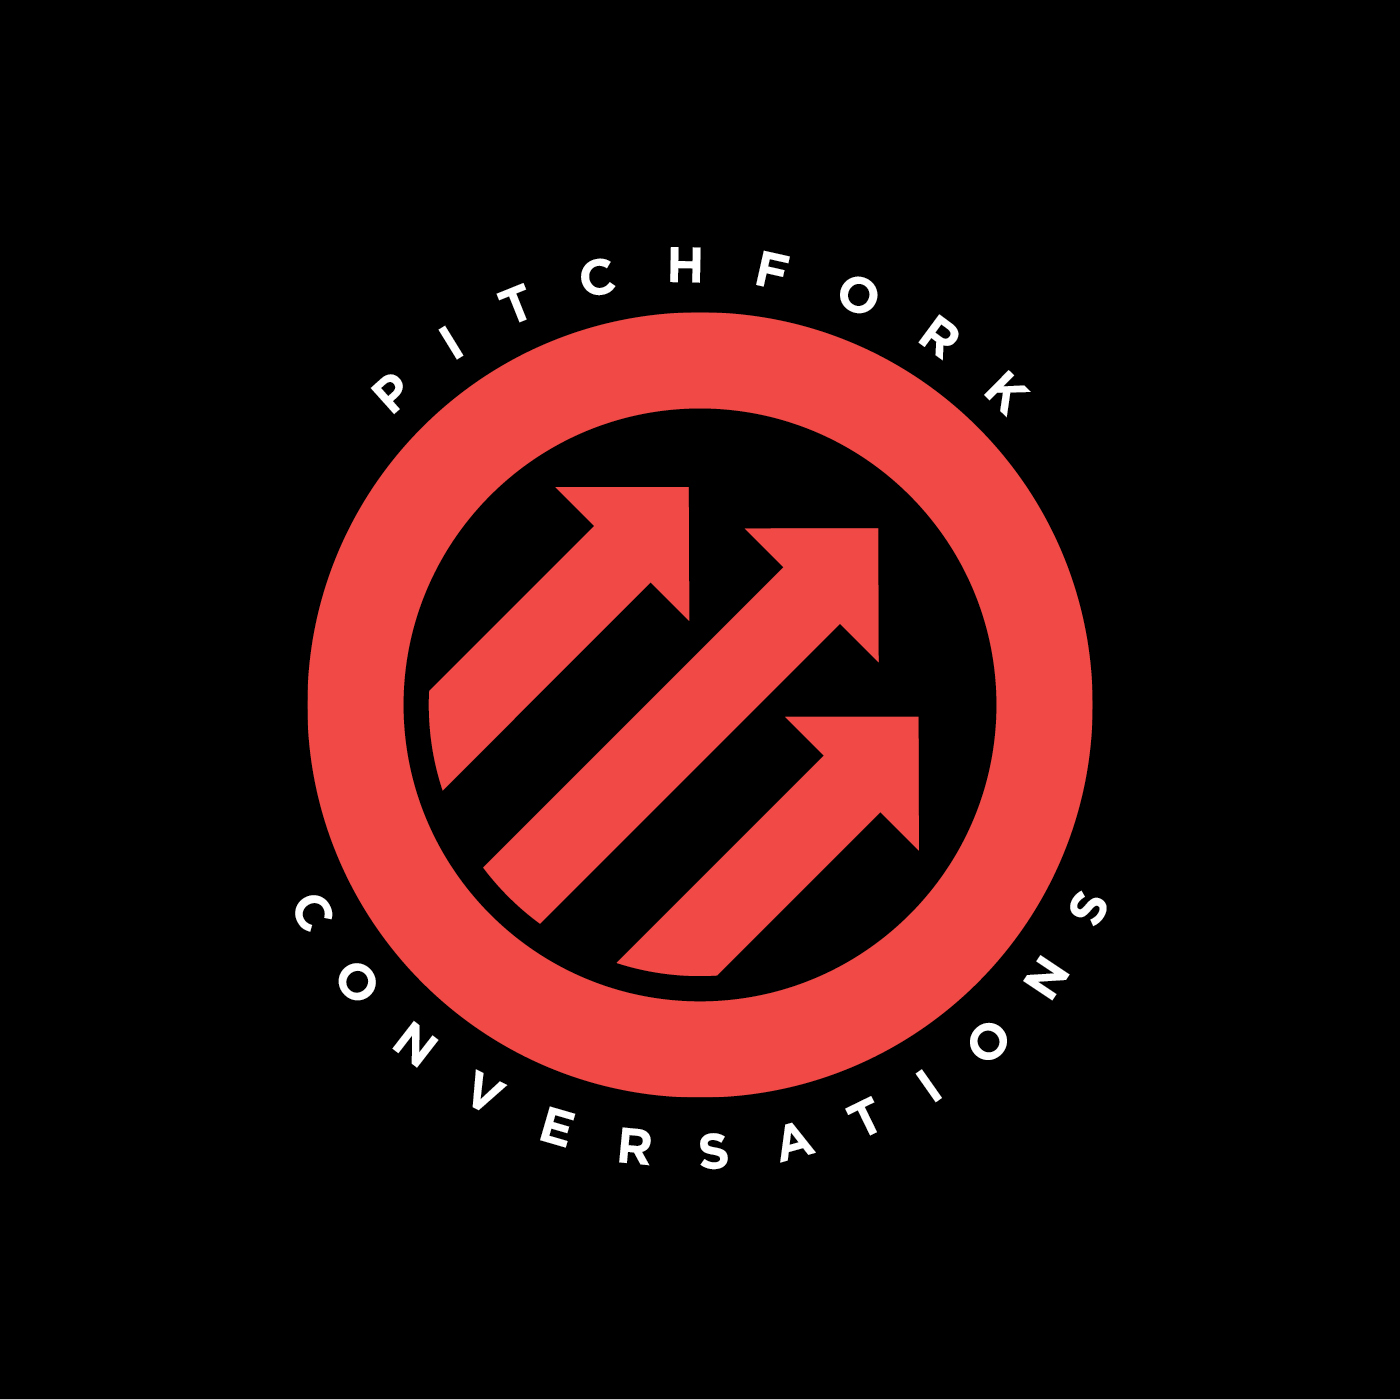 Pitchfork Conversations